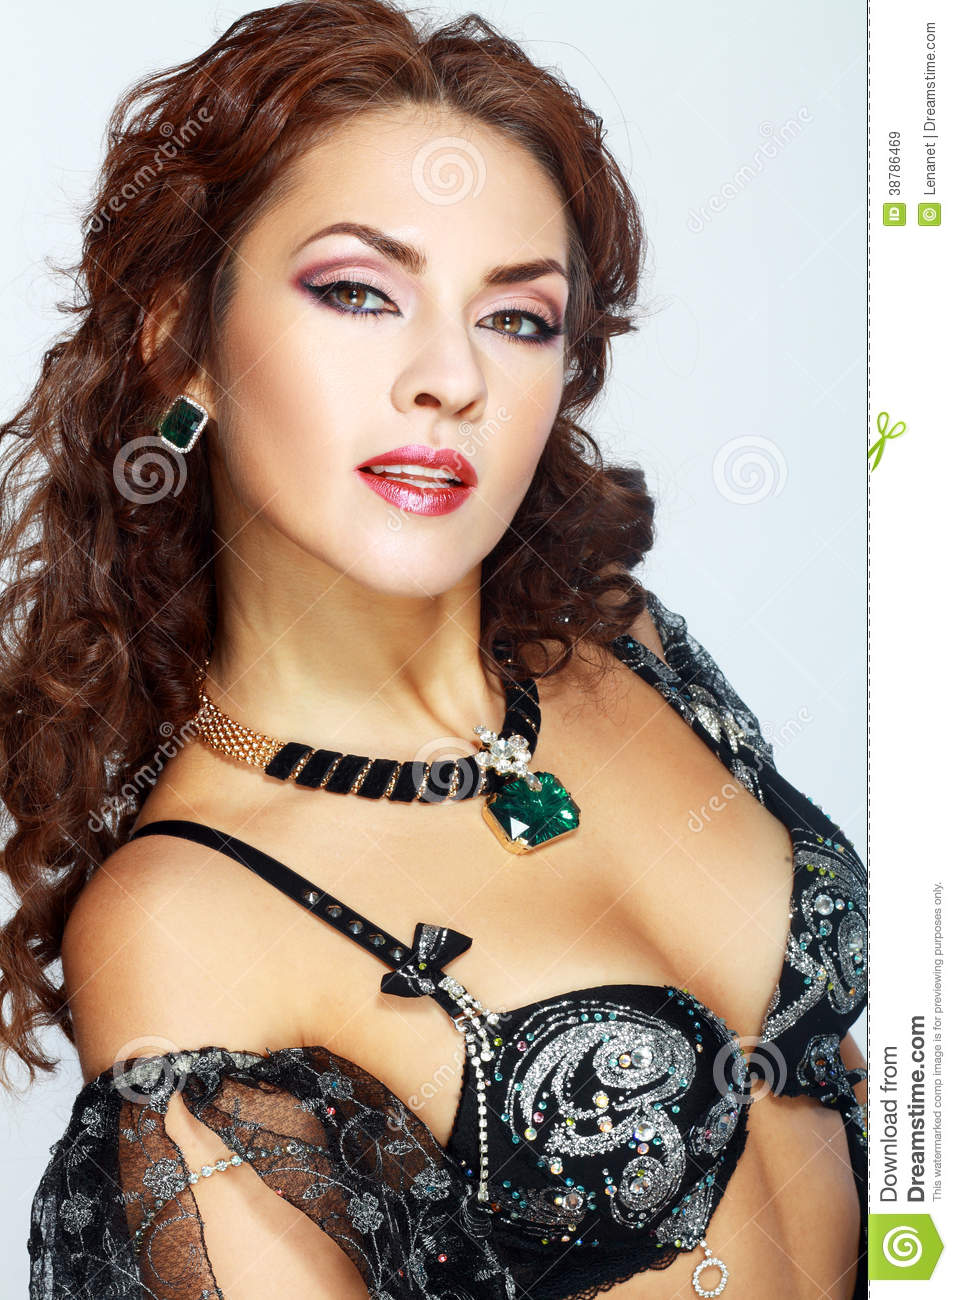 Belly Dancer Woman Portrait Stock Photo Image 38786469